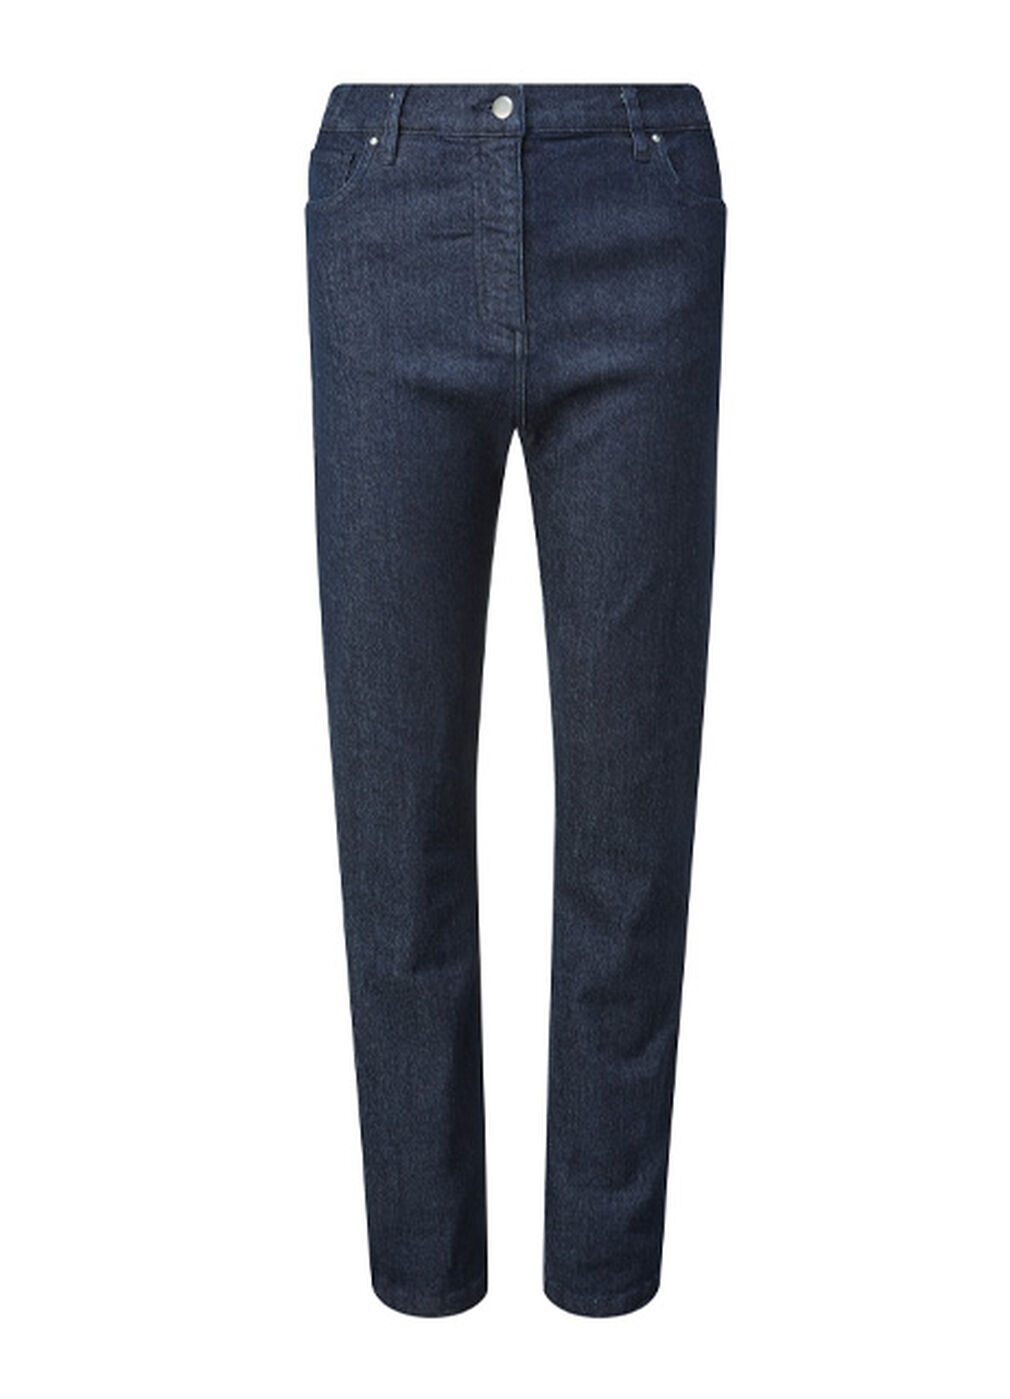 The Friday Blazer | Magic Comfort Straight Leg Jeans | By Cotton Traders